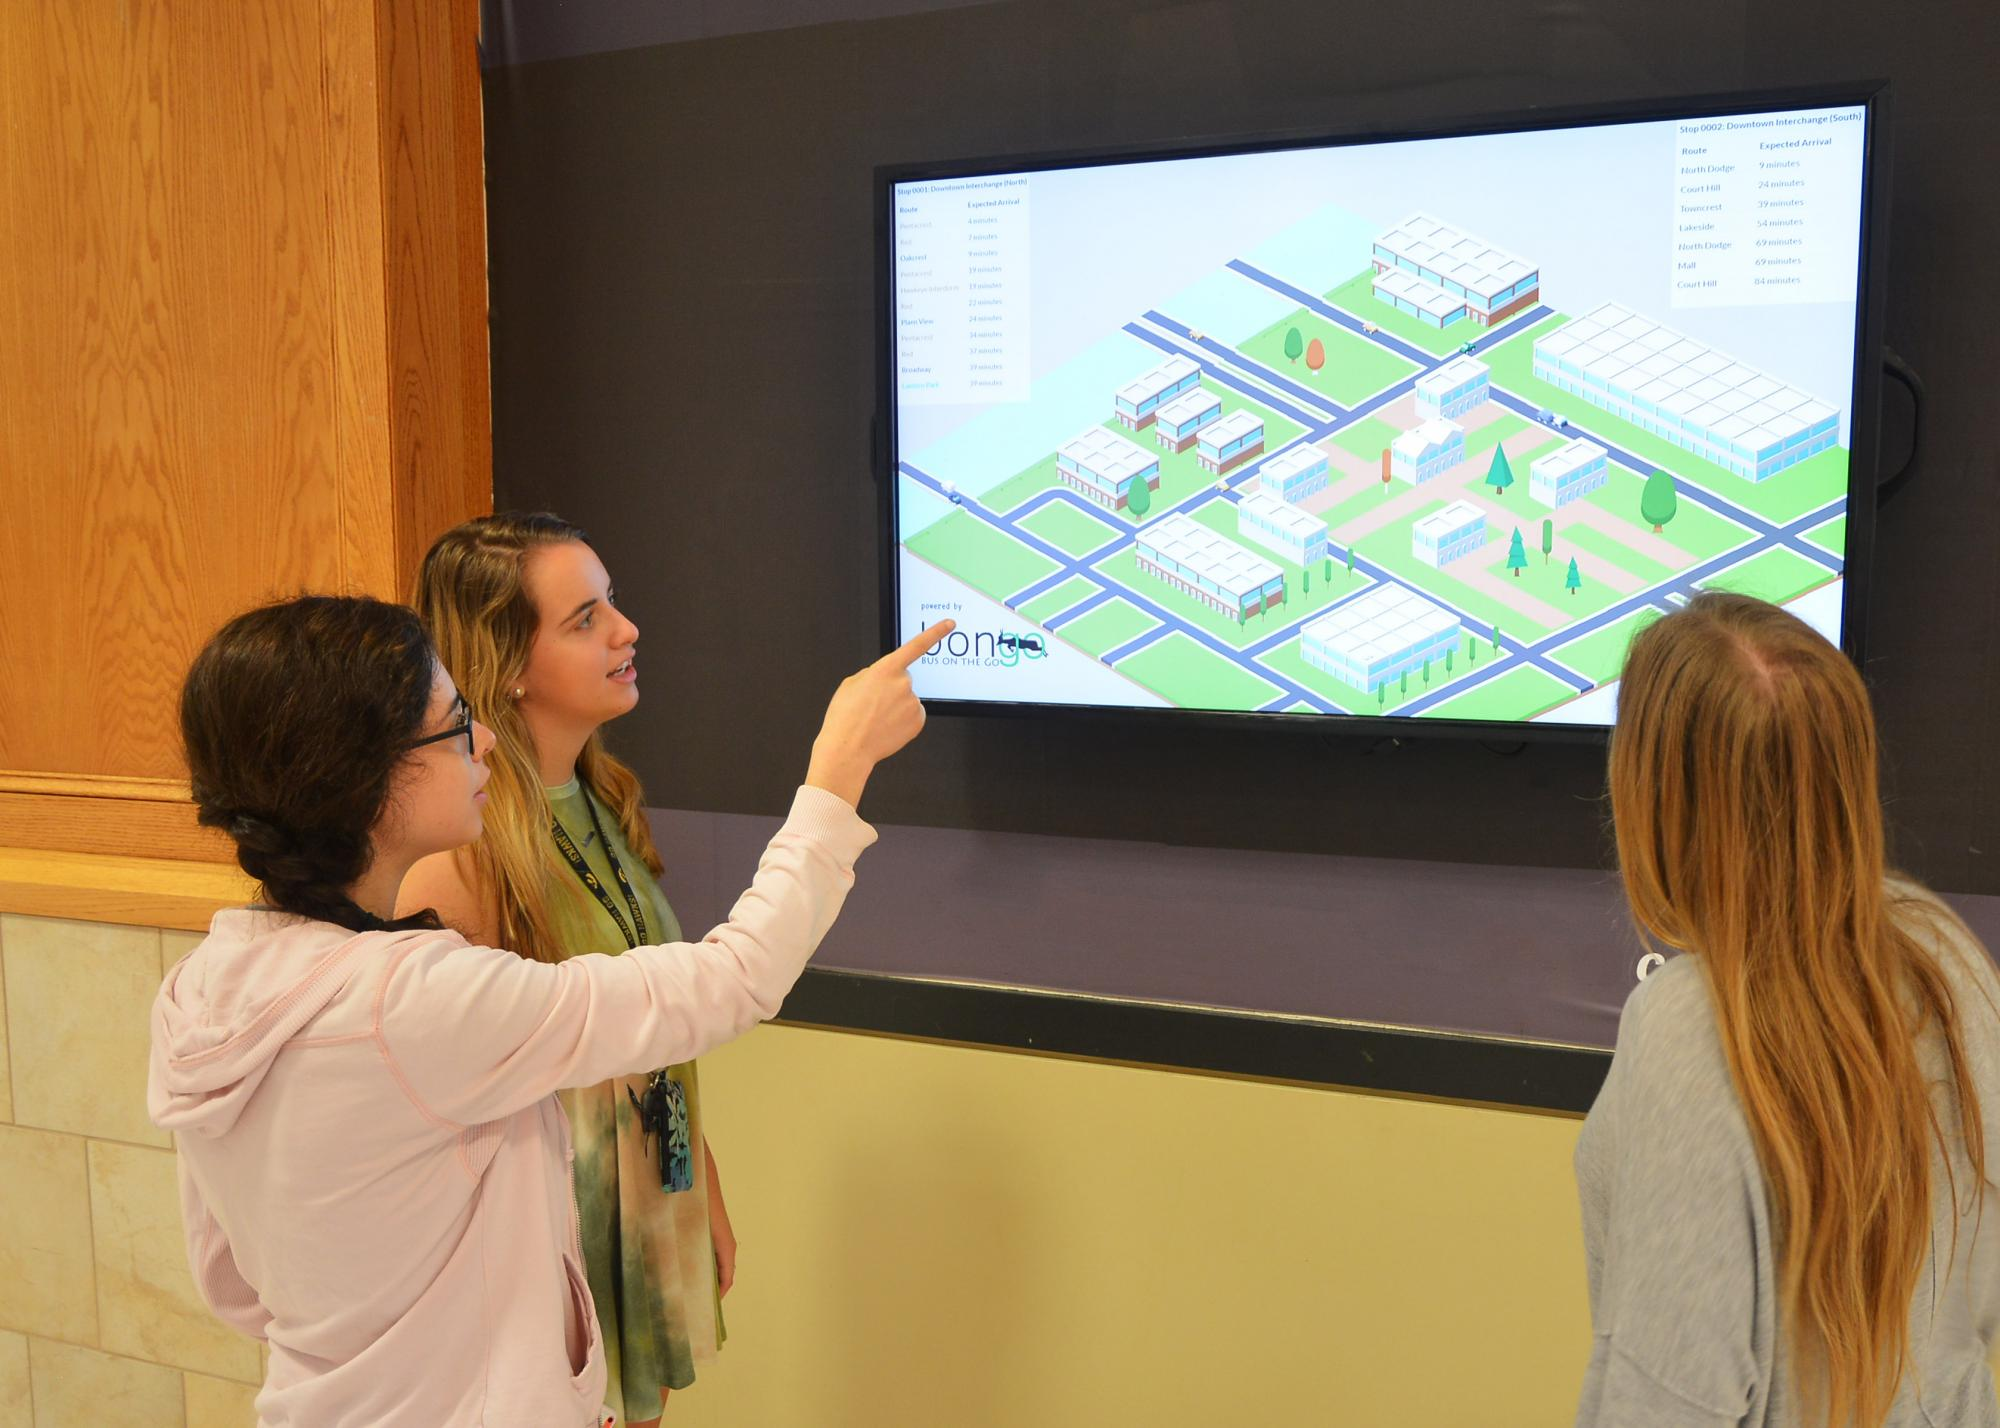 Three girls looking at a screen showing building architecture